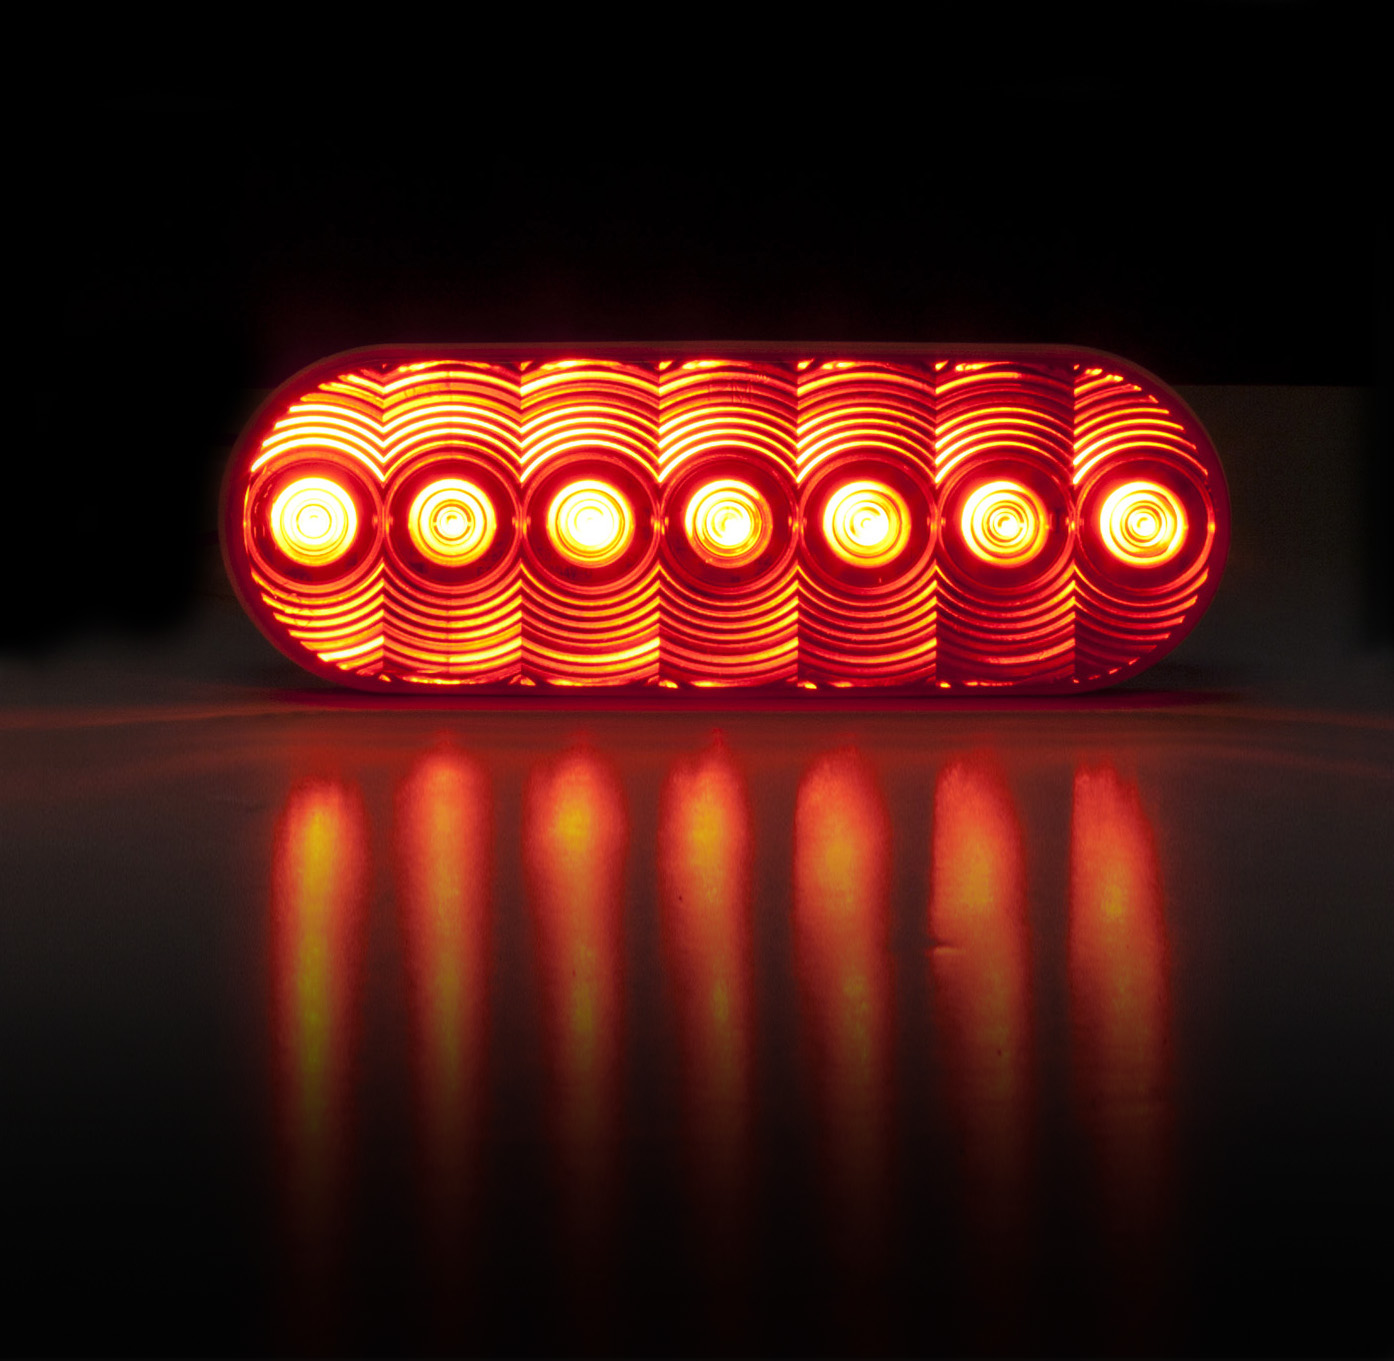 sc 1 st  Commercial Carrier Journal & Peterson touts safety lights